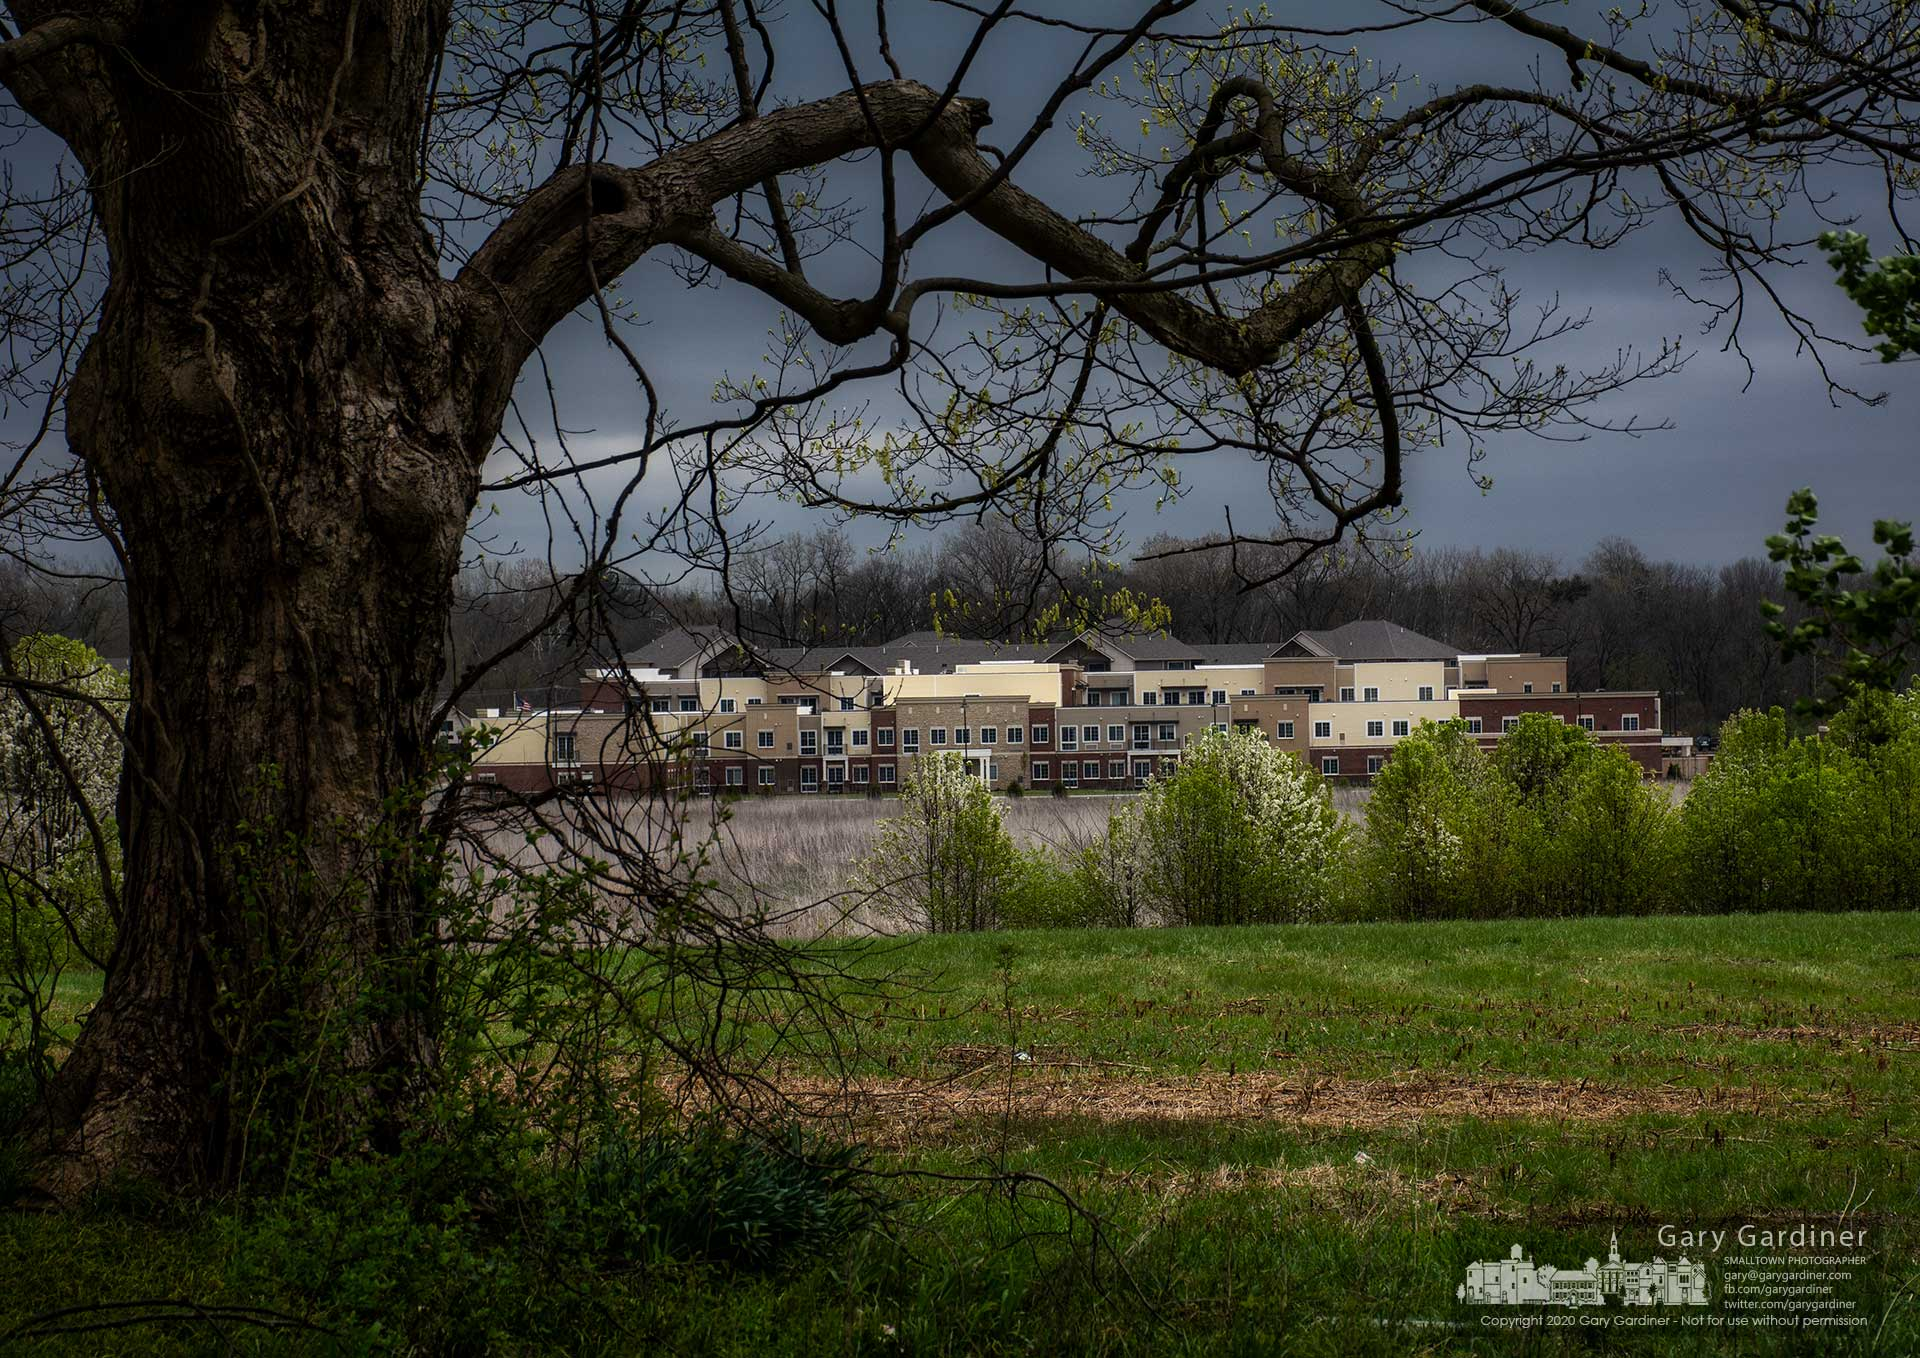 The maple tree that sits in the yard of the Braun Farm house frames the lower fields of the farm where hay grasses begin to grow in the spring and the new senior housing was built across Cooper Road from apartments still under construction. My Final Photo for April 13, 2020.